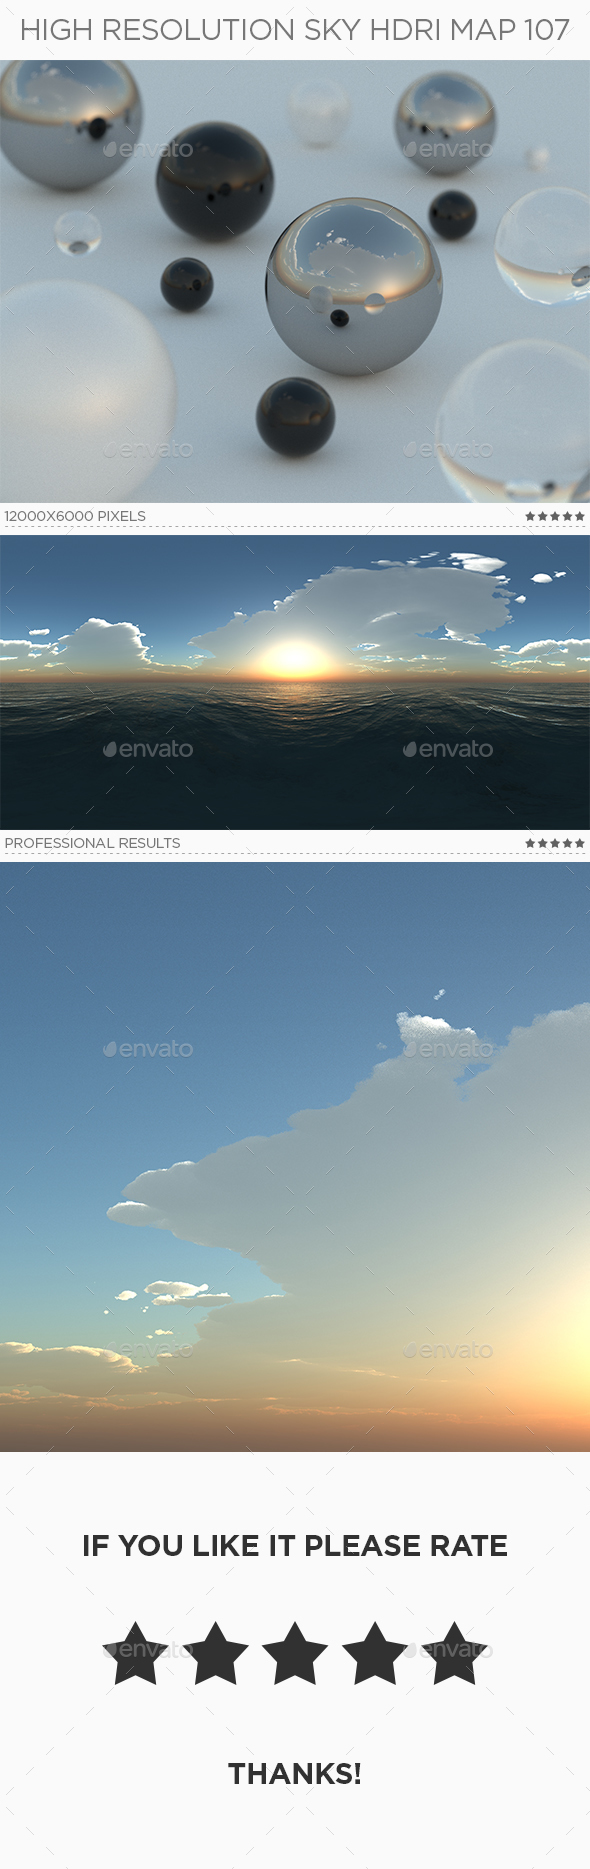 3DOcean High Resolution Sky HDRi Map 107 20392169